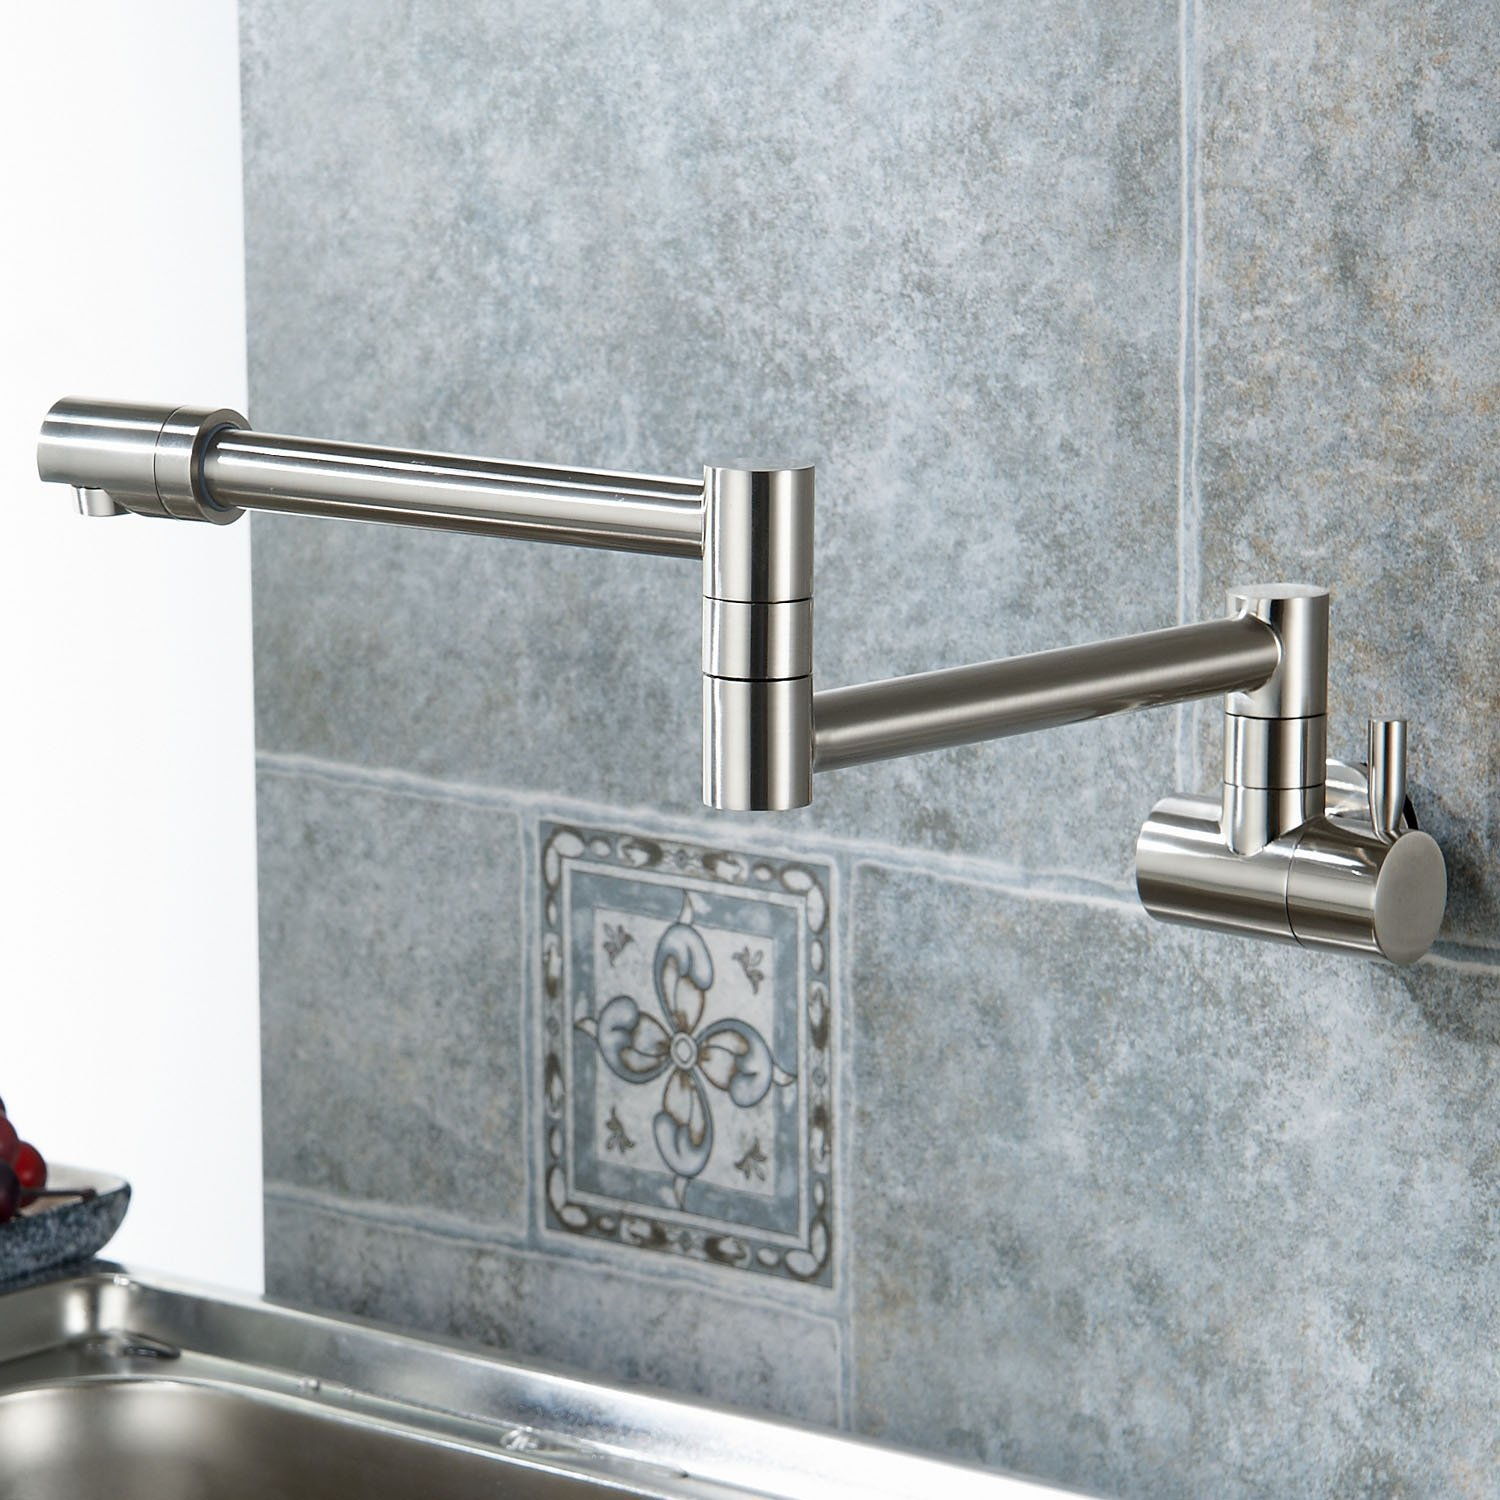 fsamr kitchen sink faucet Annaba Wall Mounted Double Joint Kitchen Sink Faucet